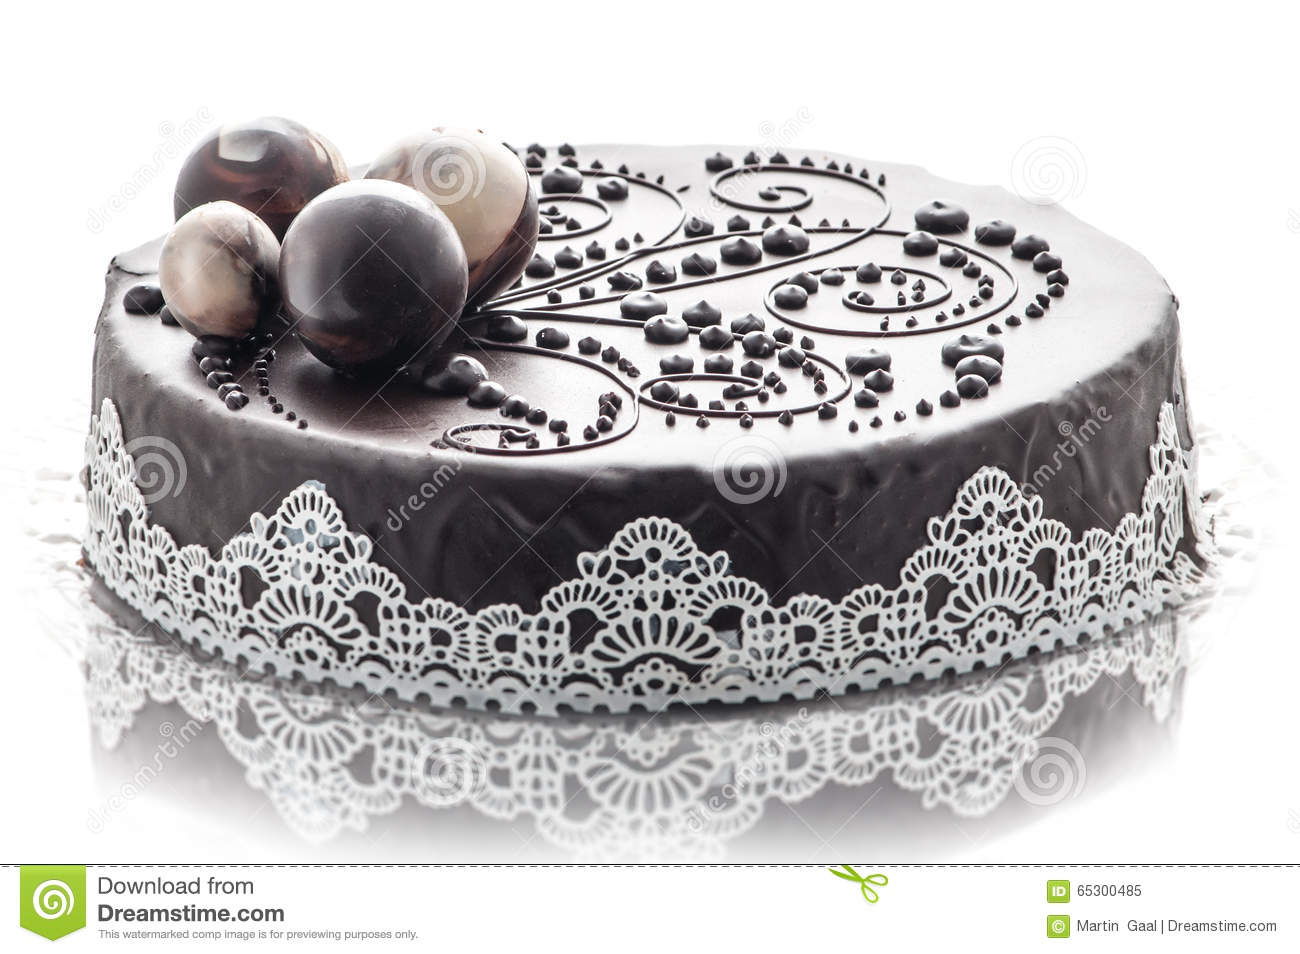 exclusive chocolate cake with lace and chocolate decoration patisserie photography for shop. Black Bedroom Furniture Sets. Home Design Ideas